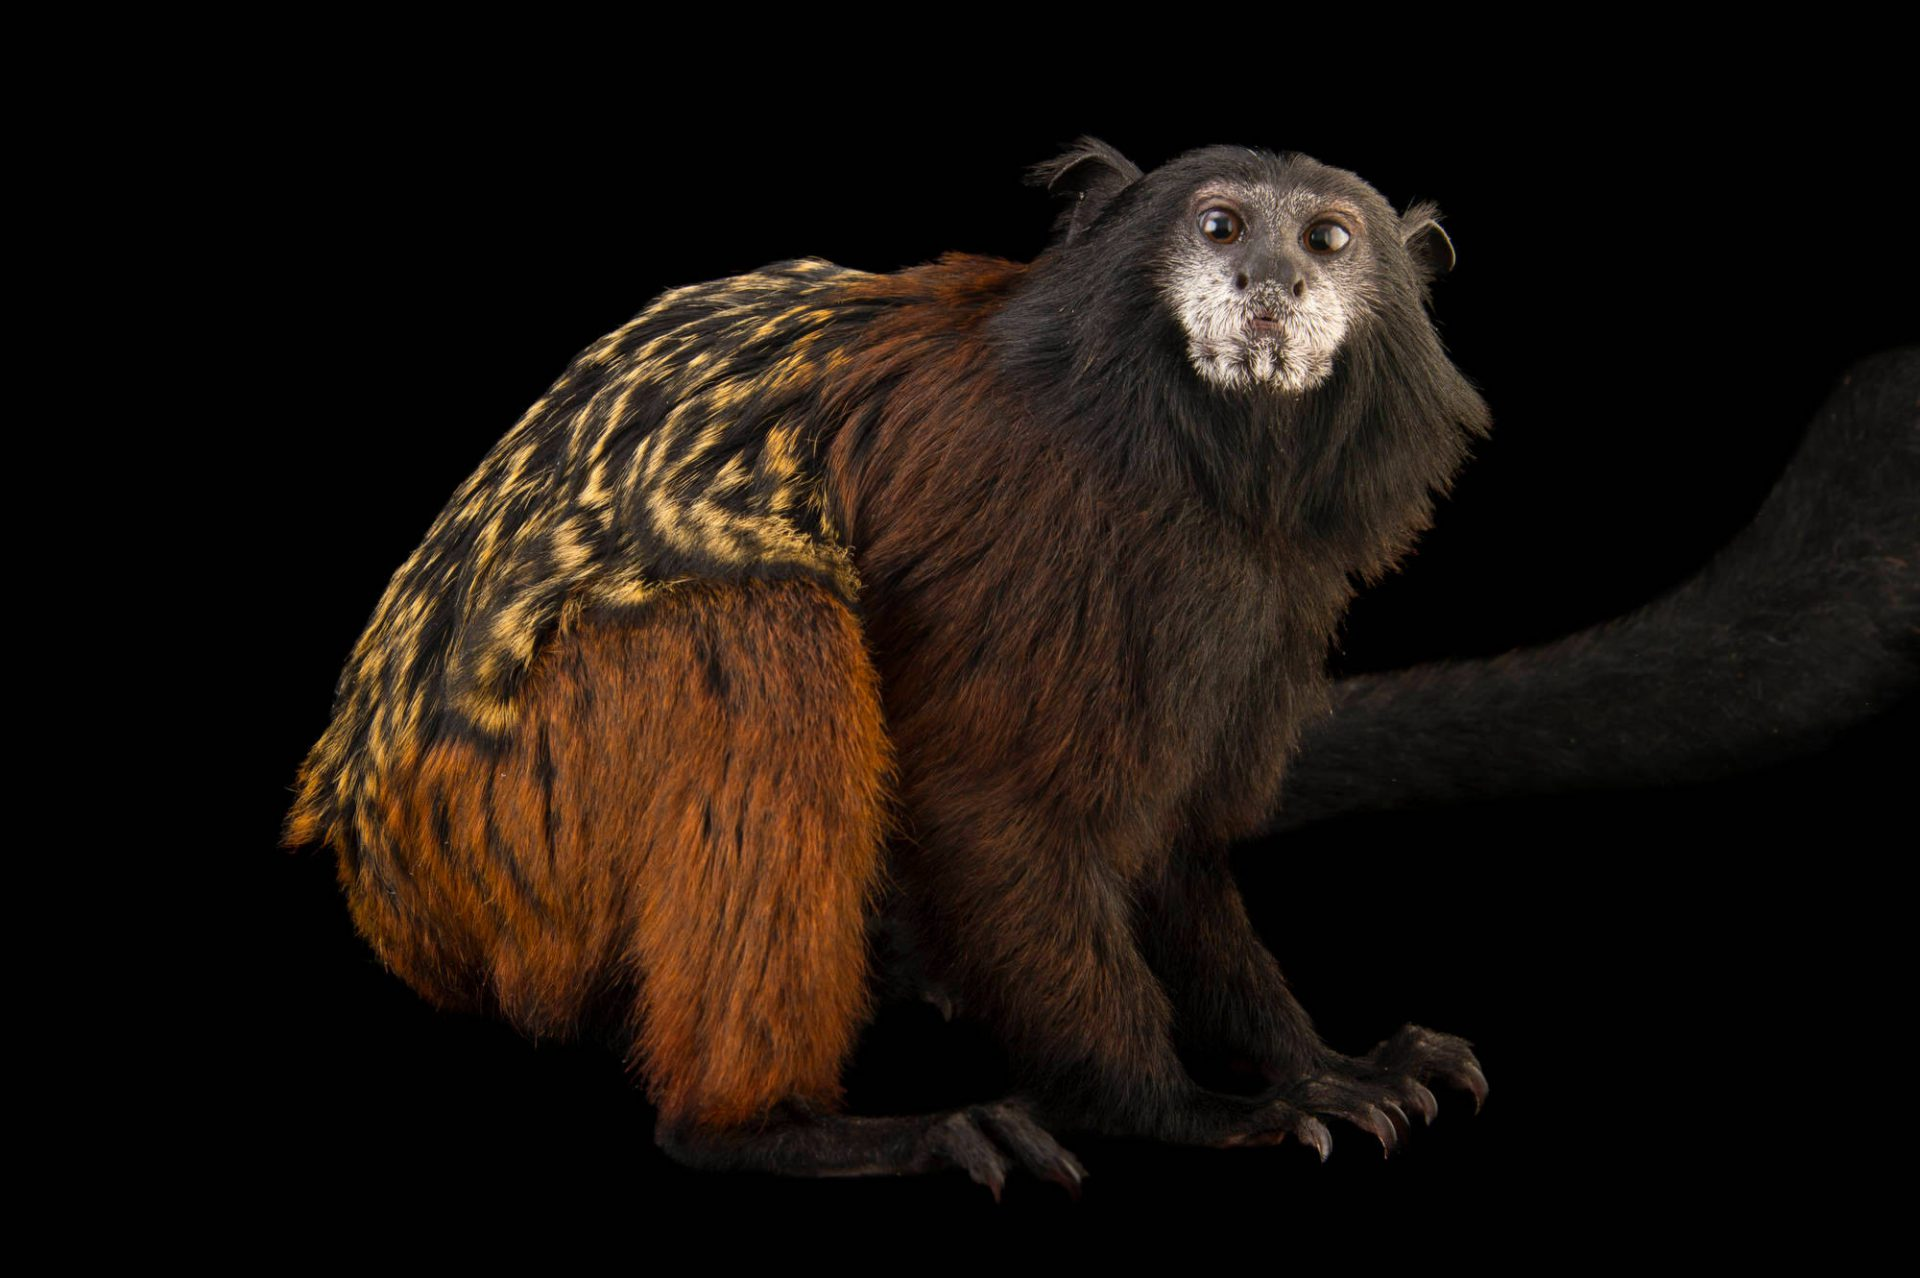 A red-mantled saddle-back tamarin (Saguinus lagonotus) at the Plzen Zoo in the Czech Republic.